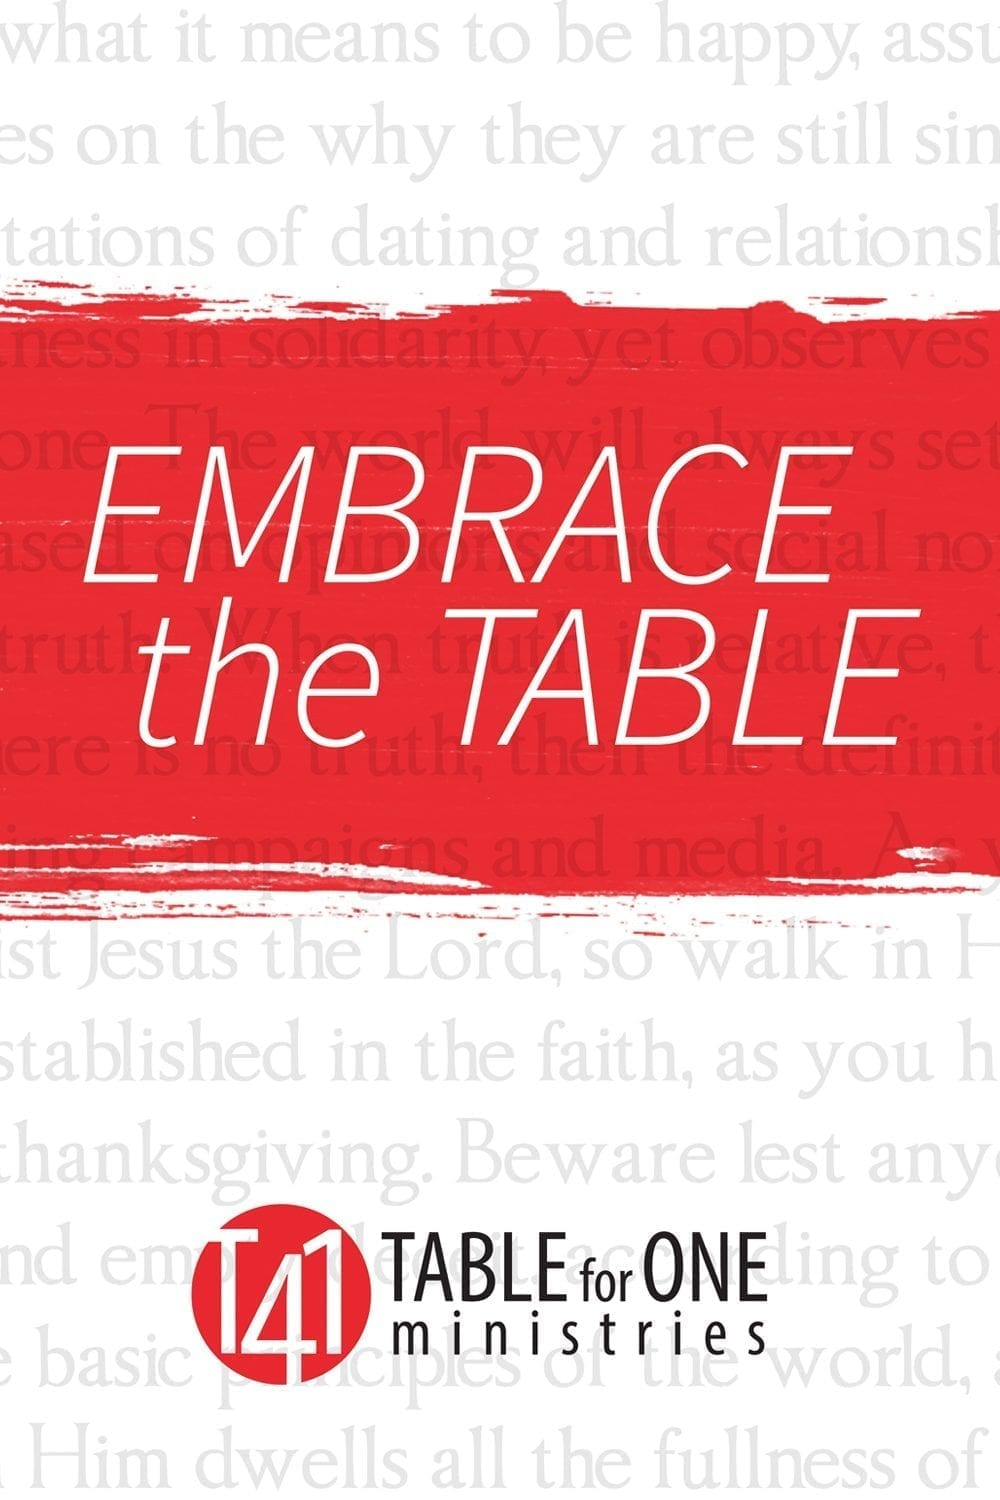 Table for One Ministries - Ministry for Singles and Leaders to Singles - Logo - Be Complete In Christ - singles ministry resources - single adults ministry resources - Single adult bible study - single adult bible studies